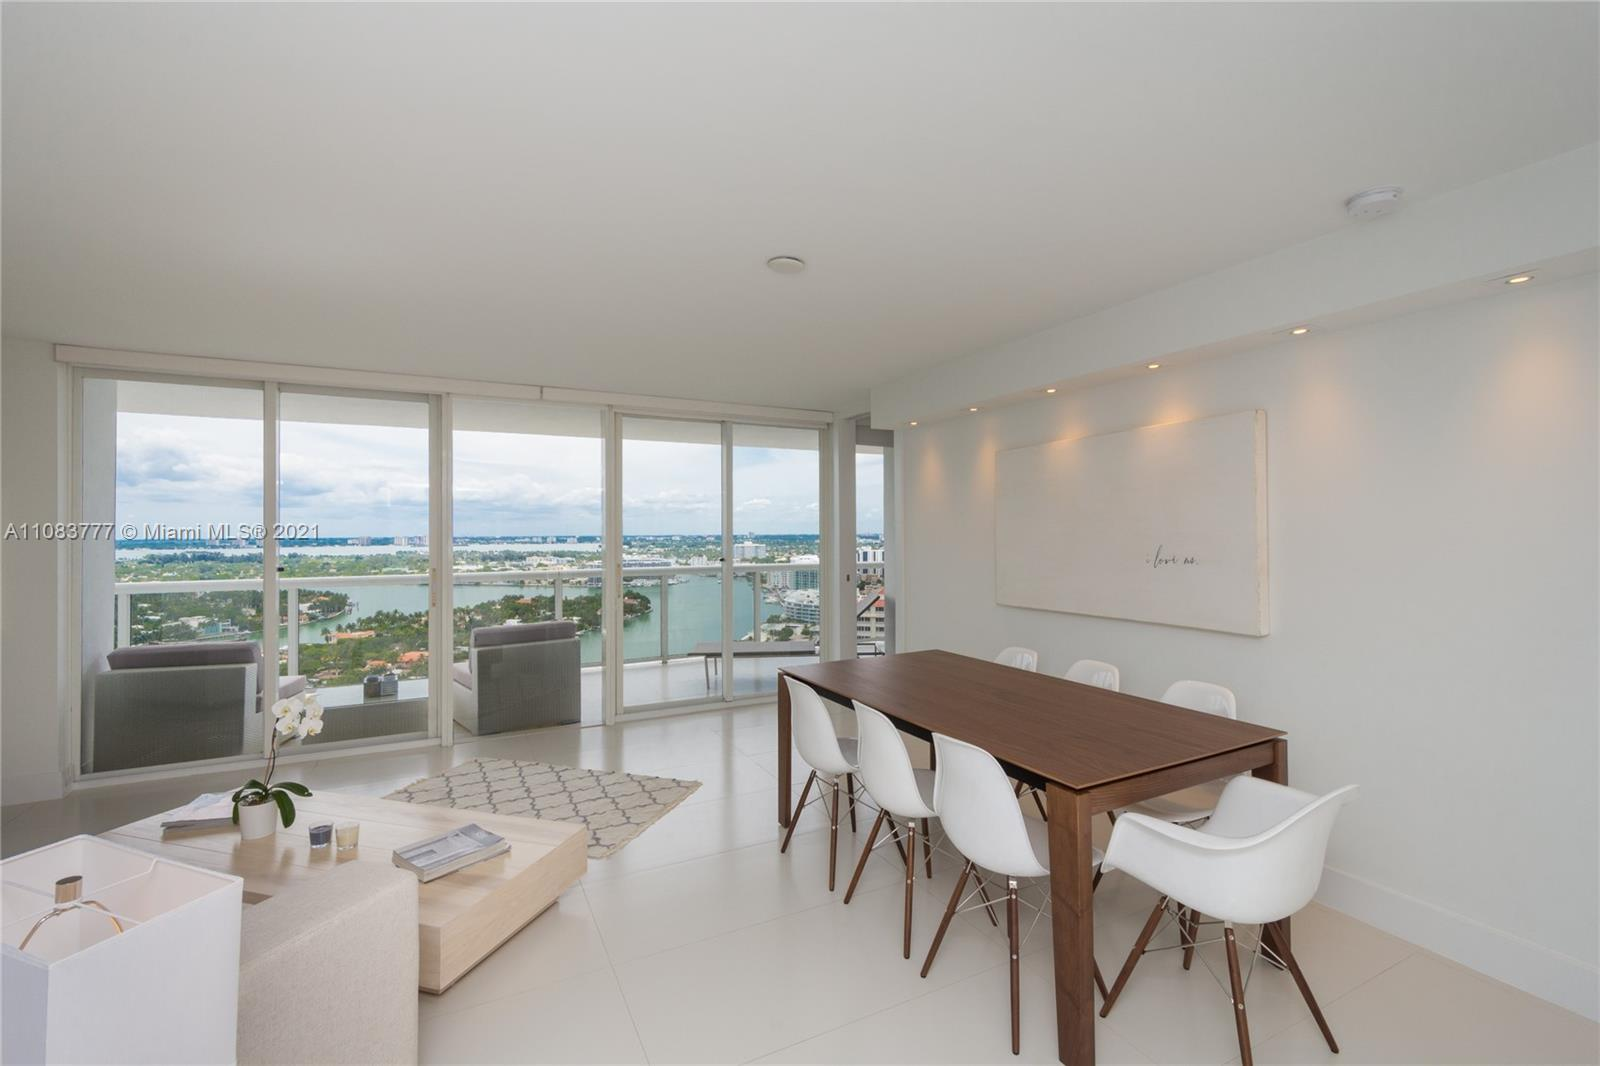 6301  Collins Ave #3006 For Sale A11083777, FL